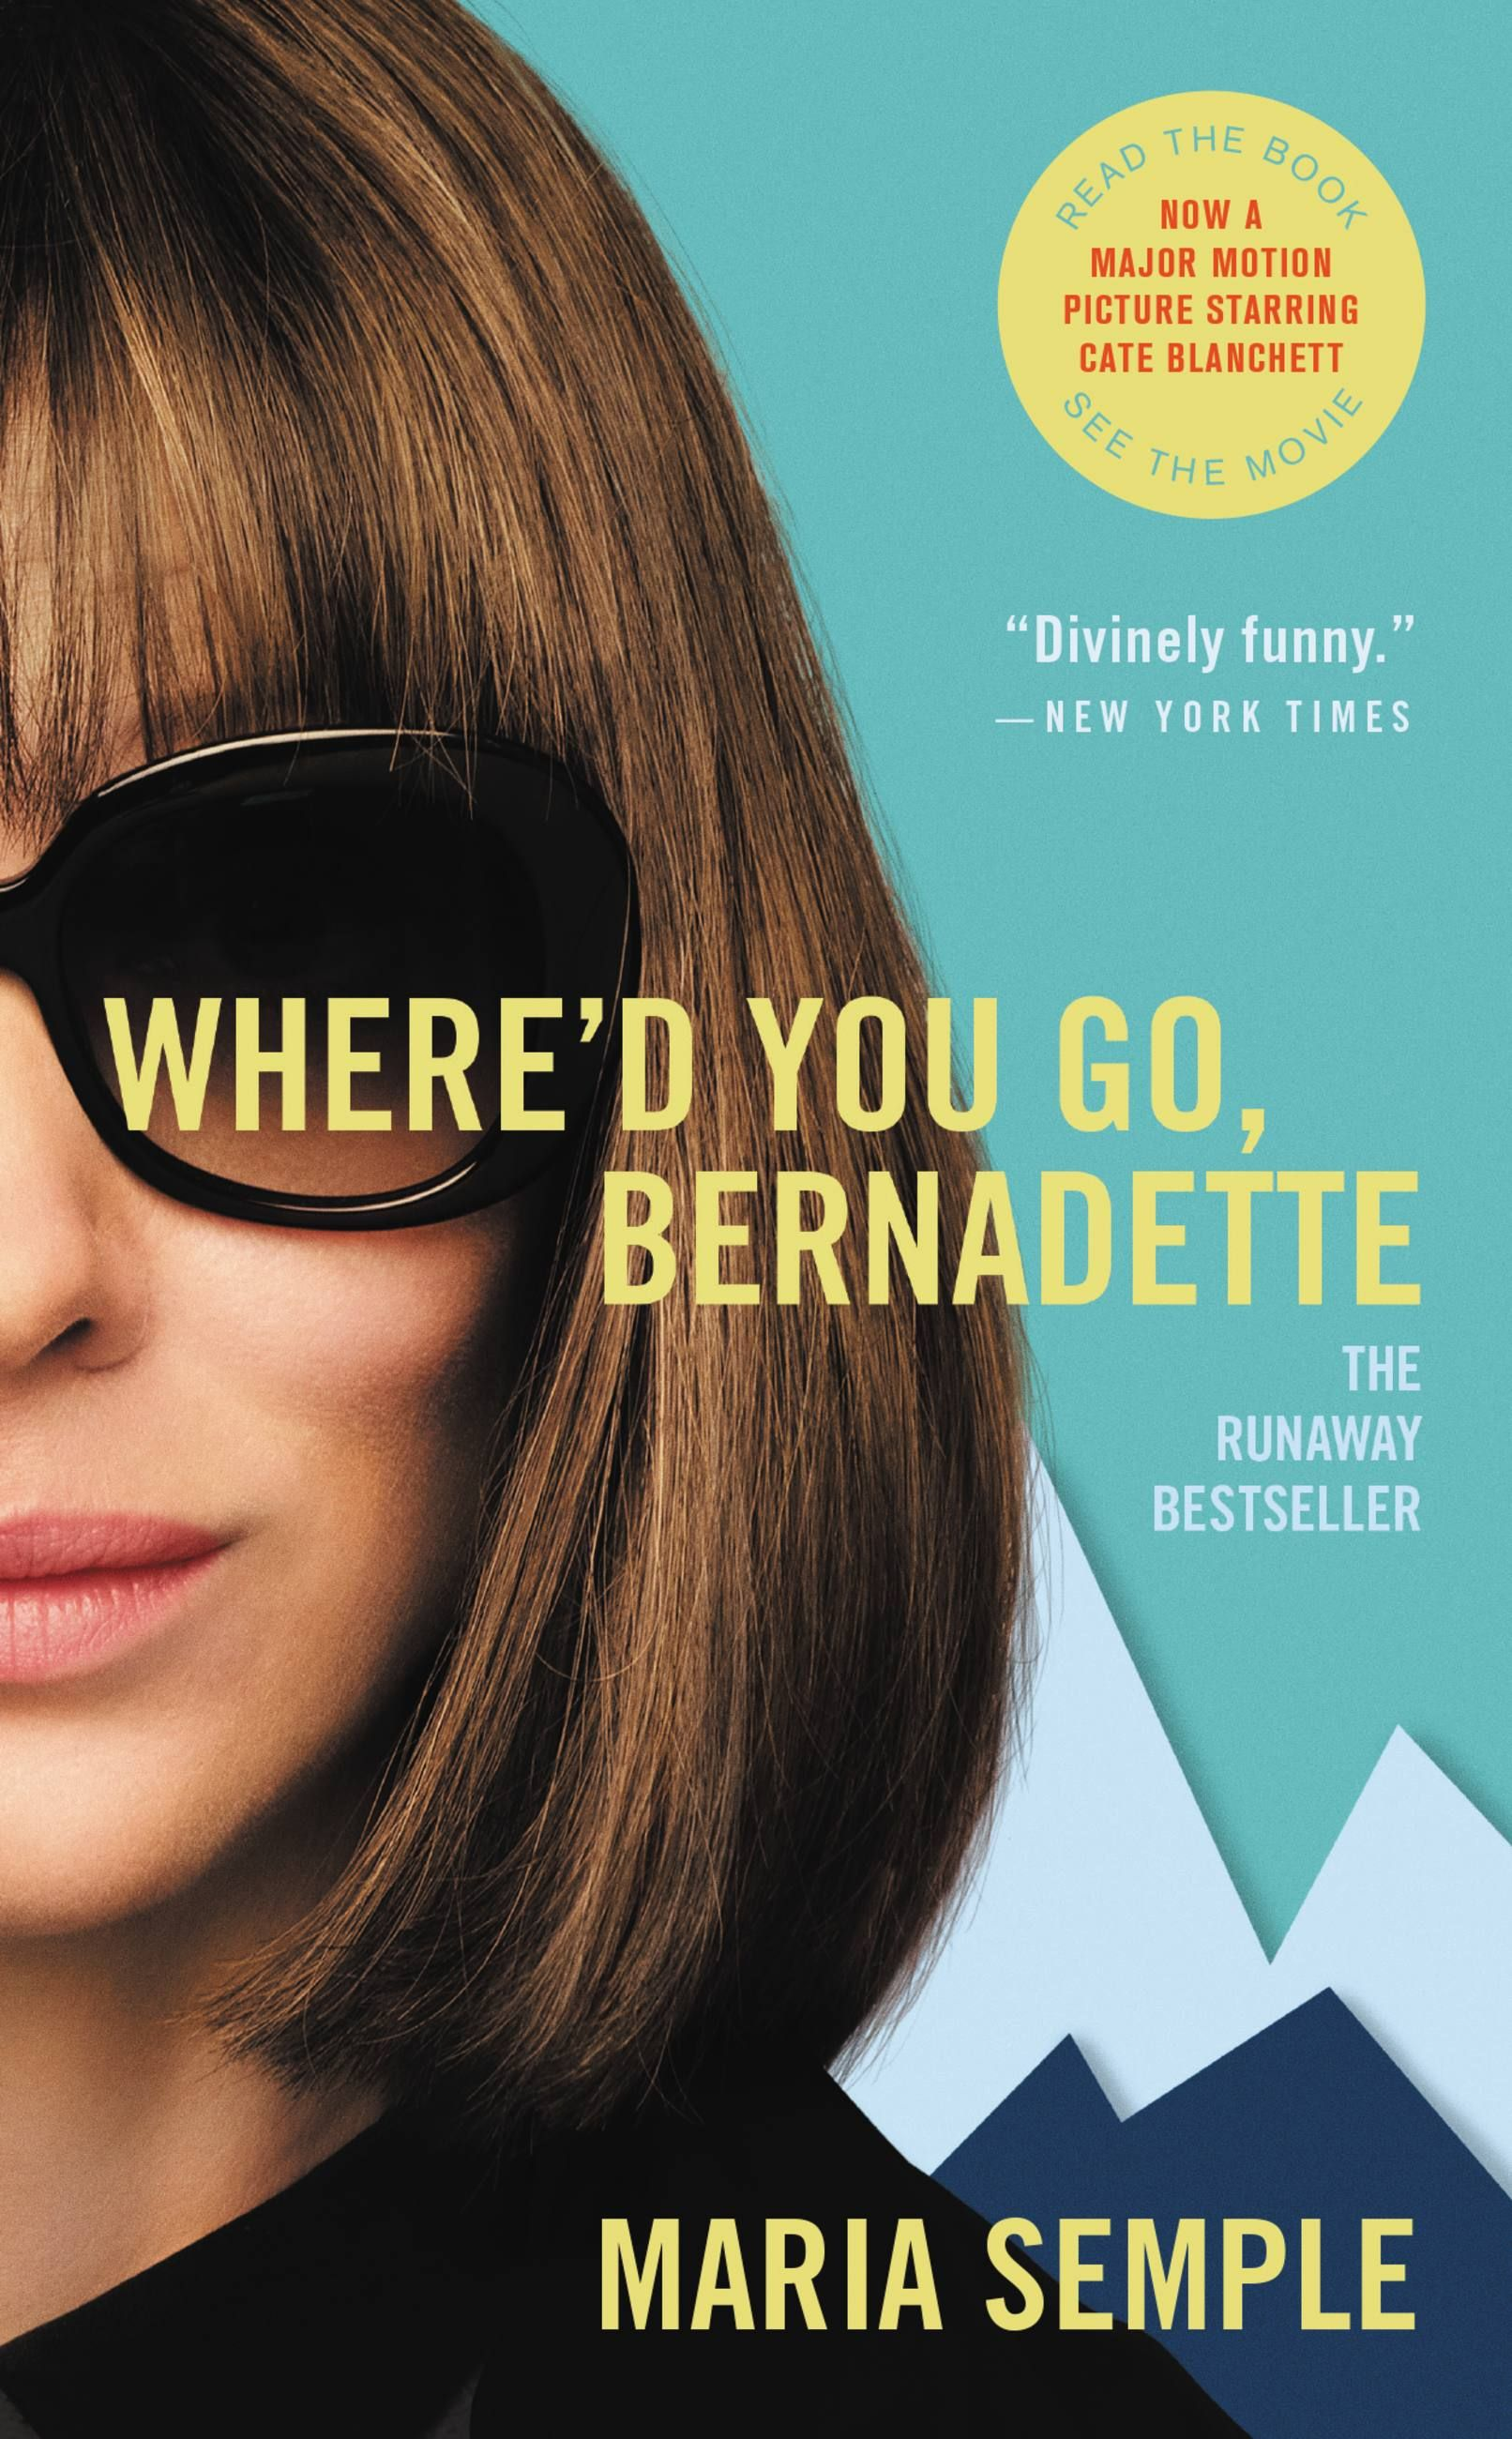 Where'd You Go Bernadette by Maria Semple - A misanthropic matriarch leaves her eccentric family in crisis when she mysteriously disappears in this whip-smart and